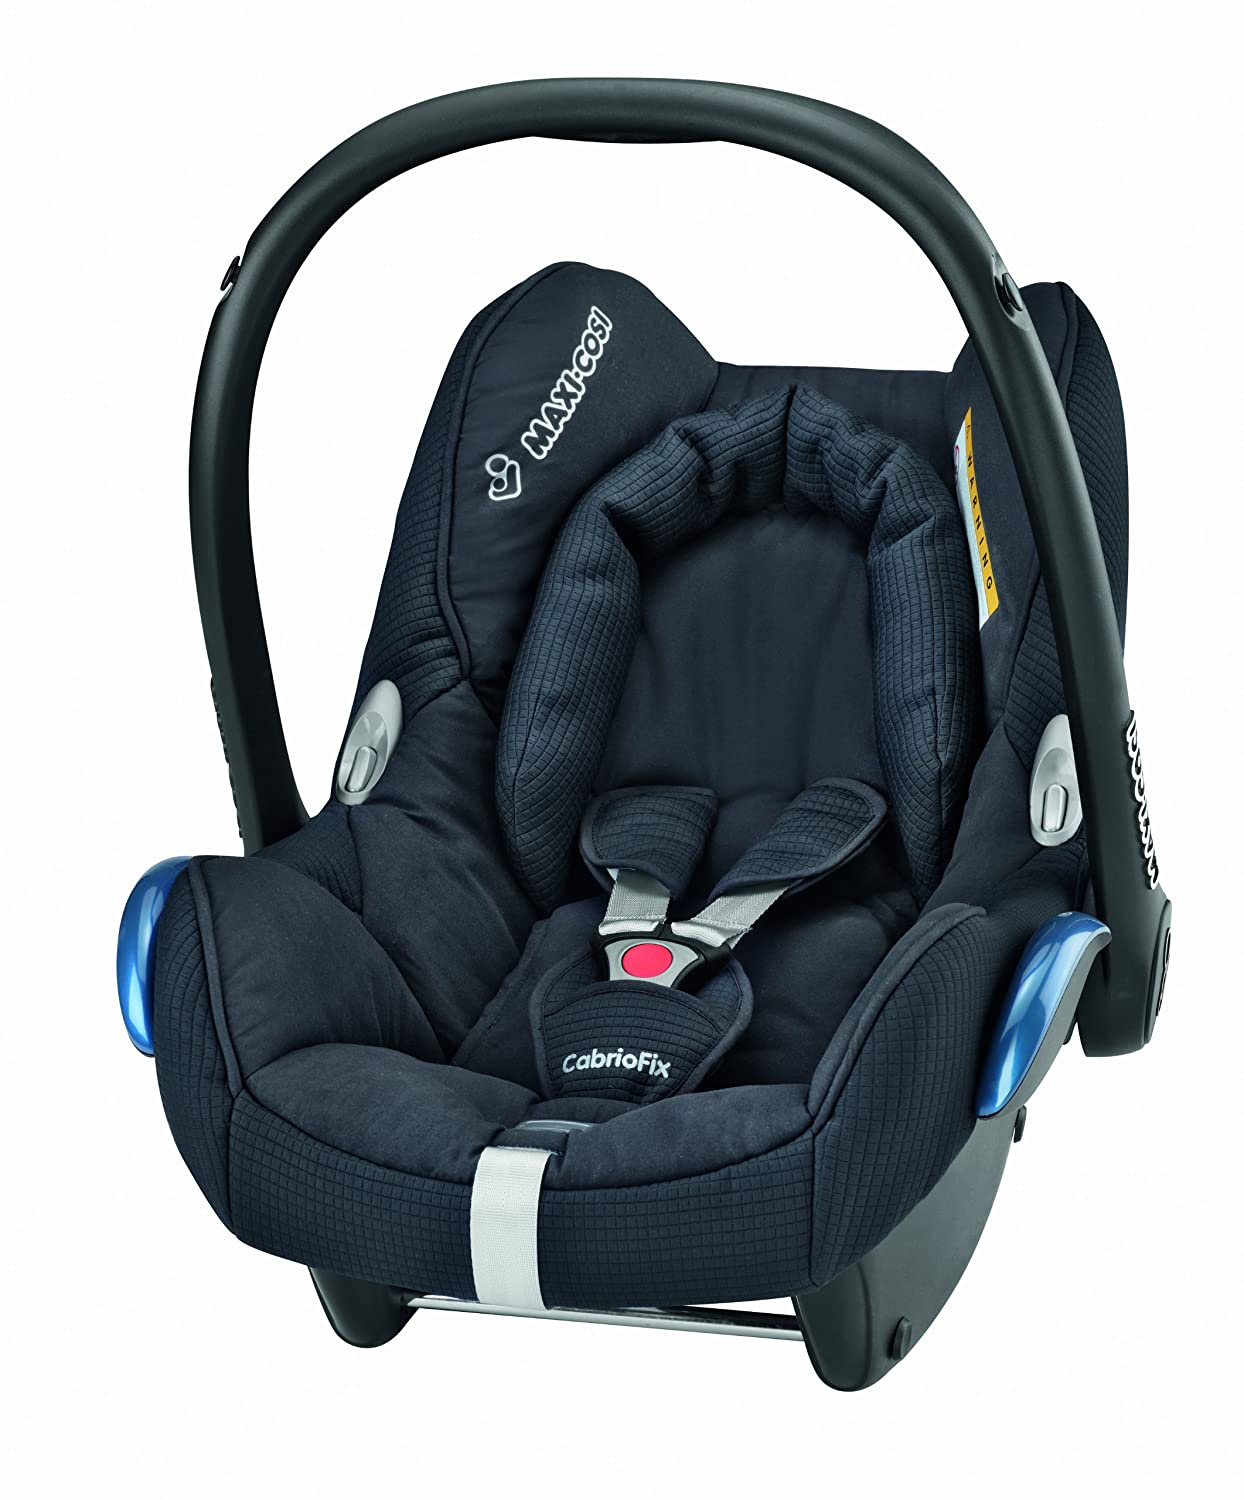 Maxi-Cosi CabrioFix Group 0+ Baby Car Seat (Total Black ...